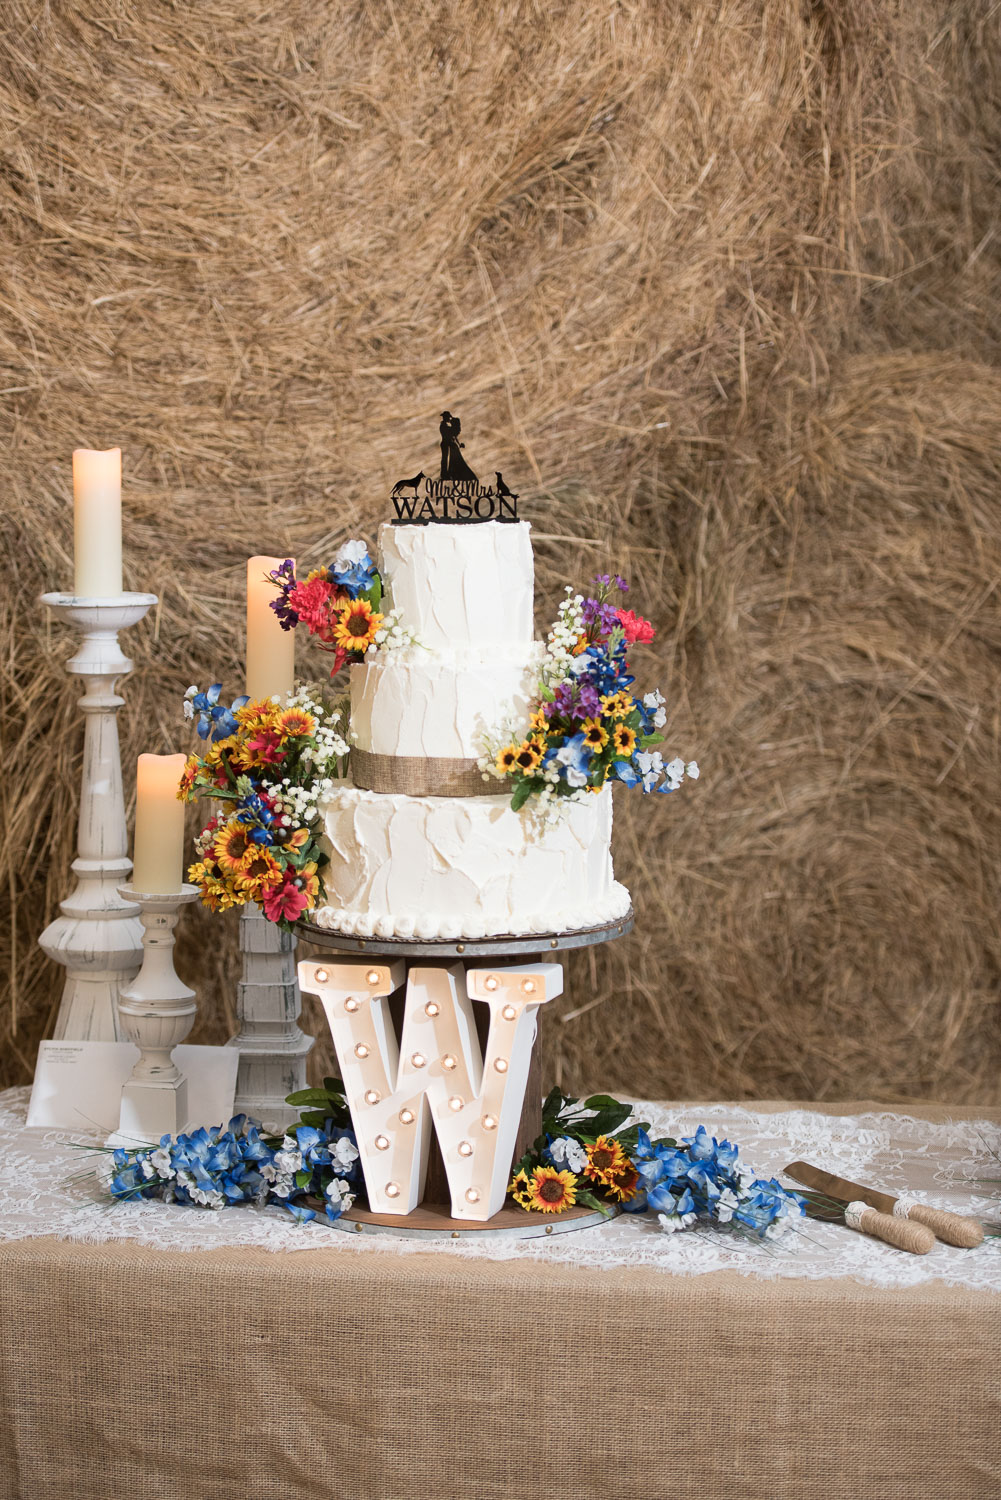 114 two-tier cake from once upon a time bakery in lockhart.jpg